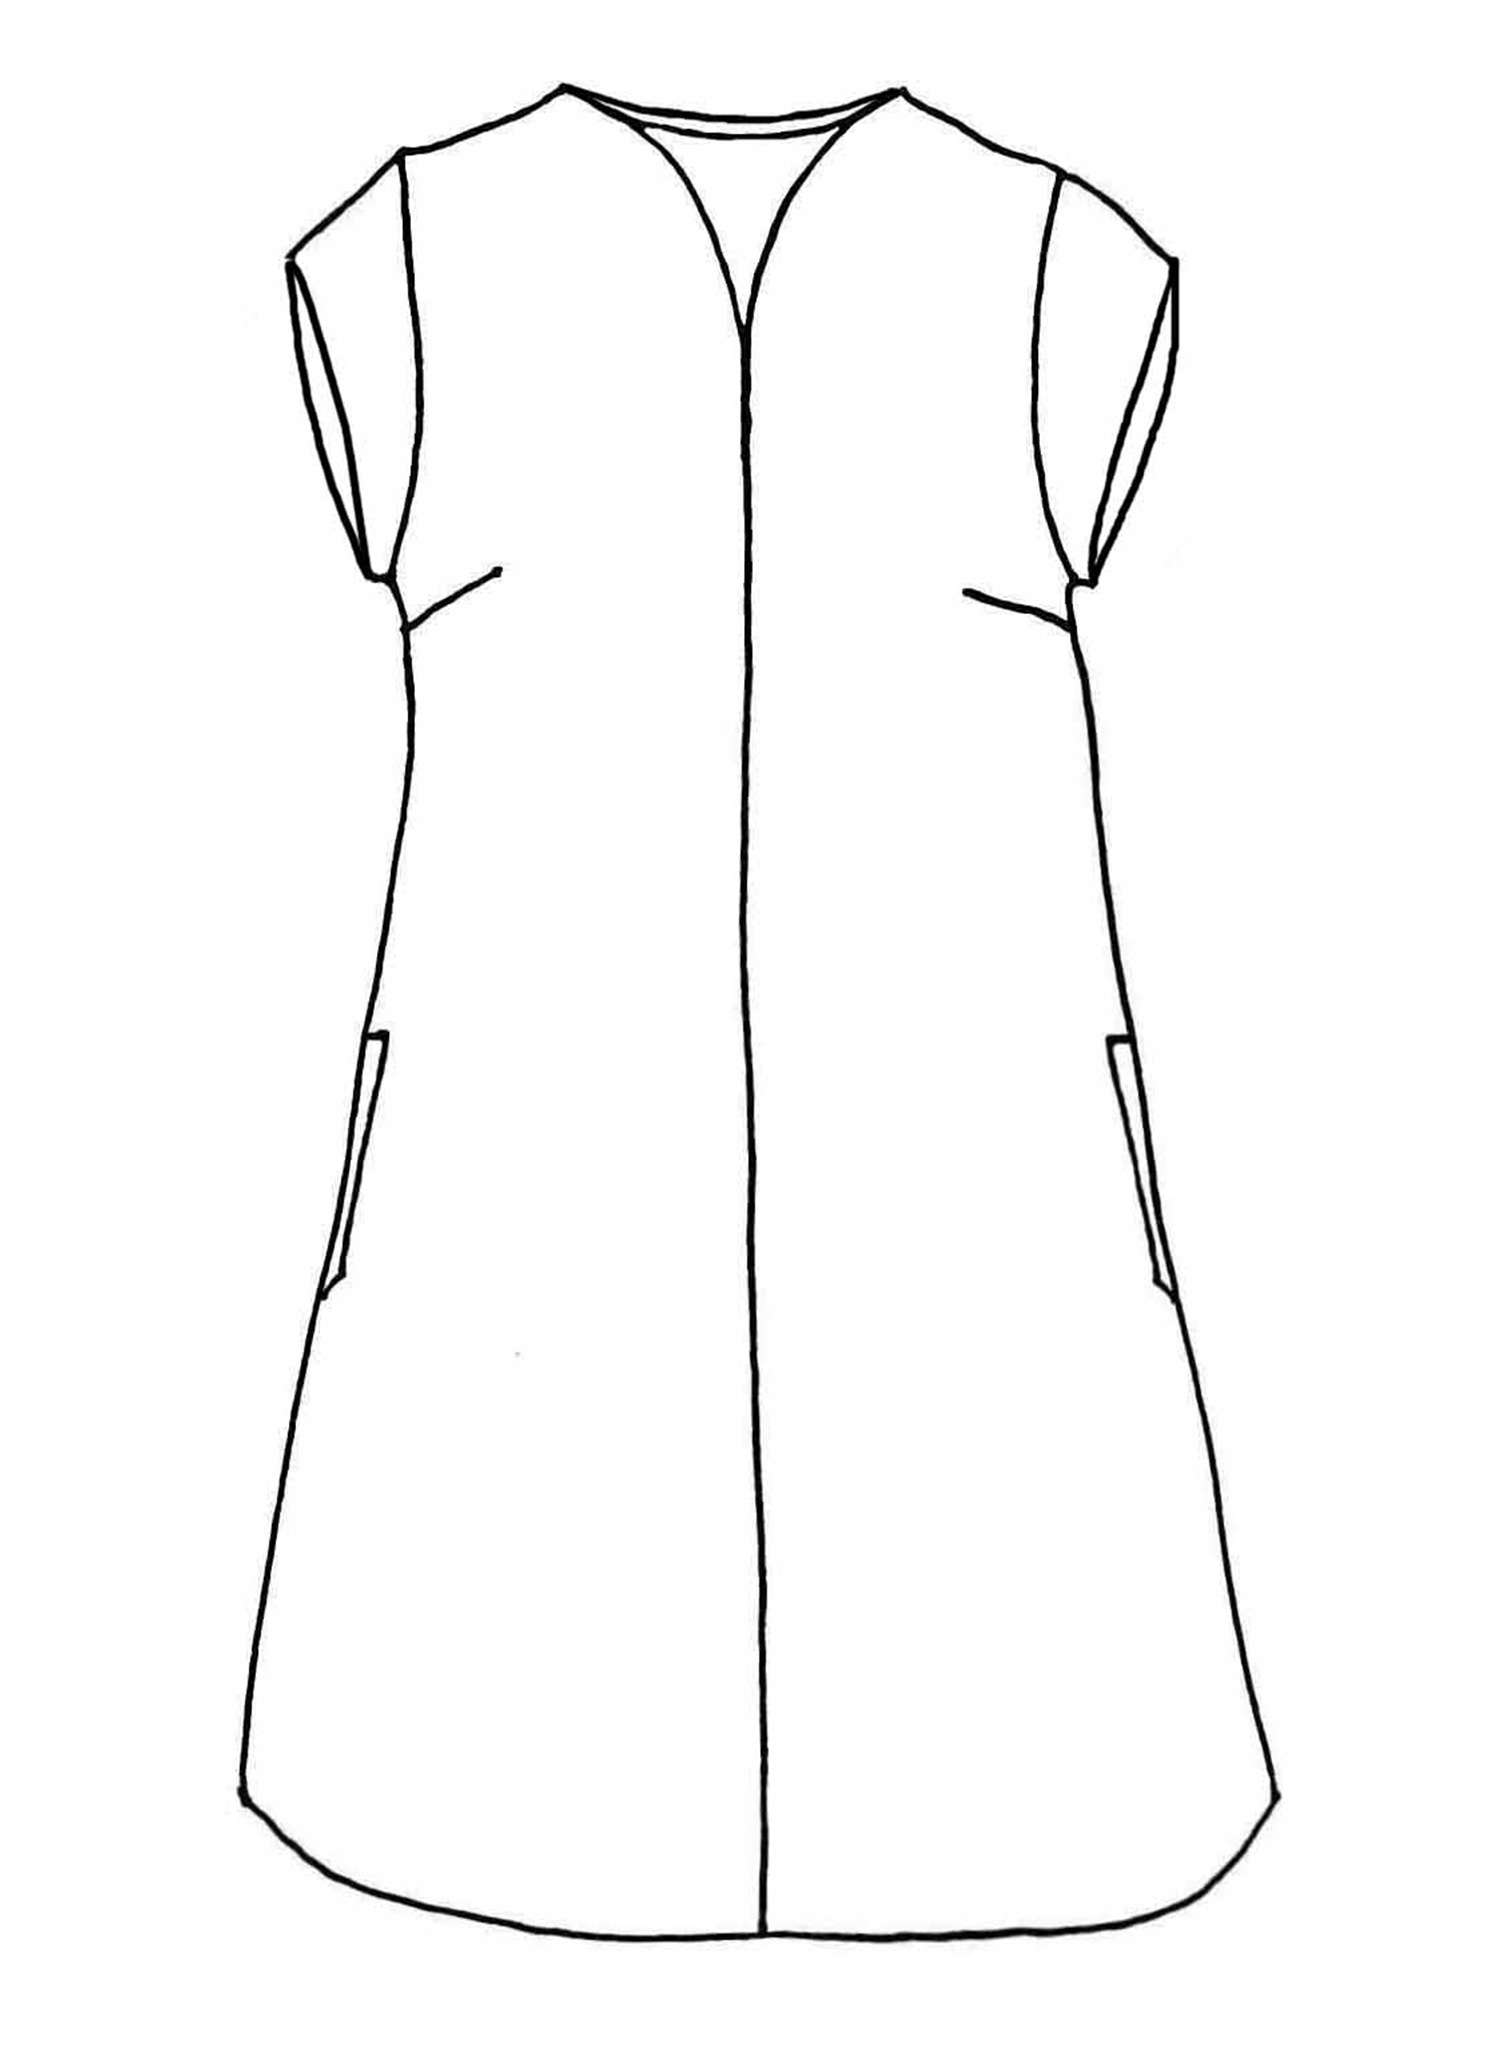 Centered Dress sketch image